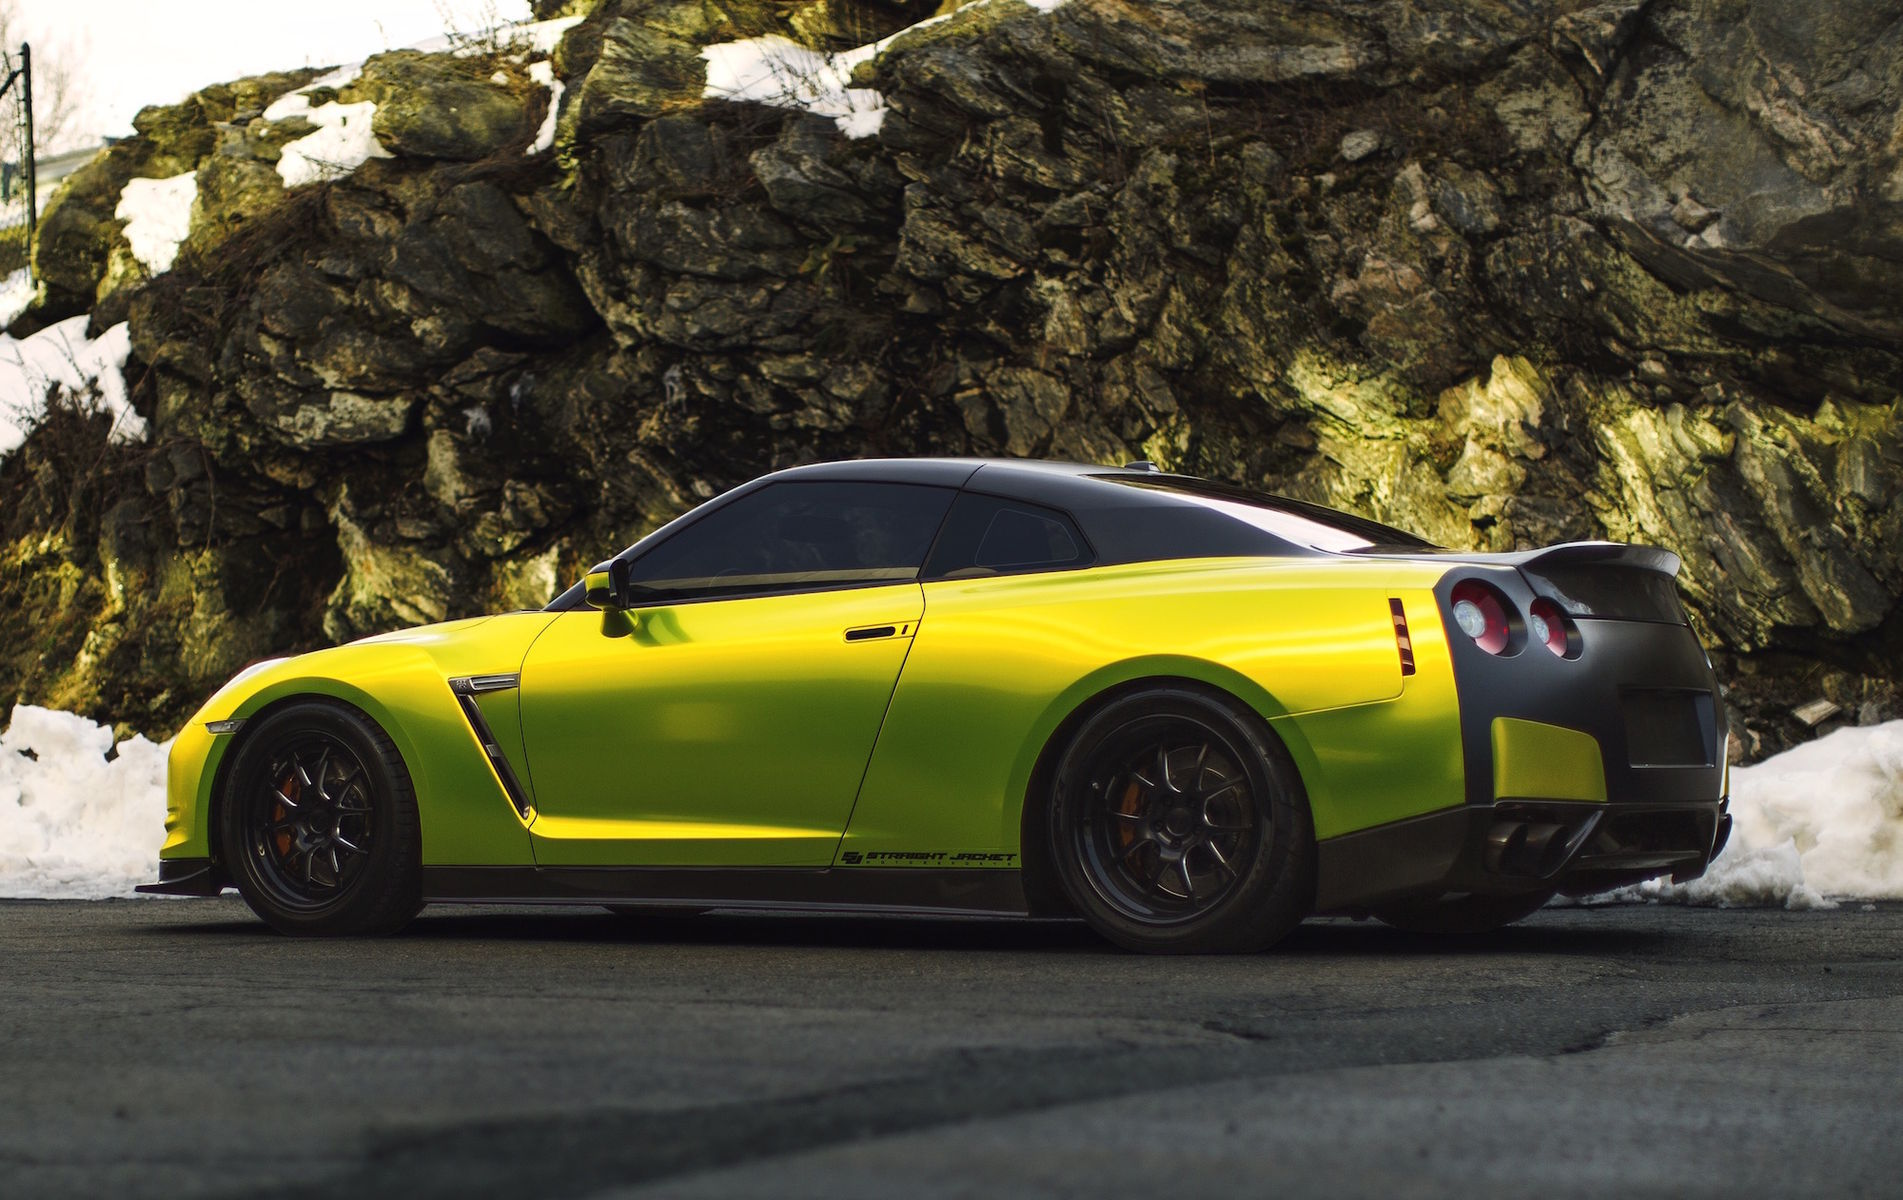 2009 Nissan GT-R | Greg's Alpha12-Powered